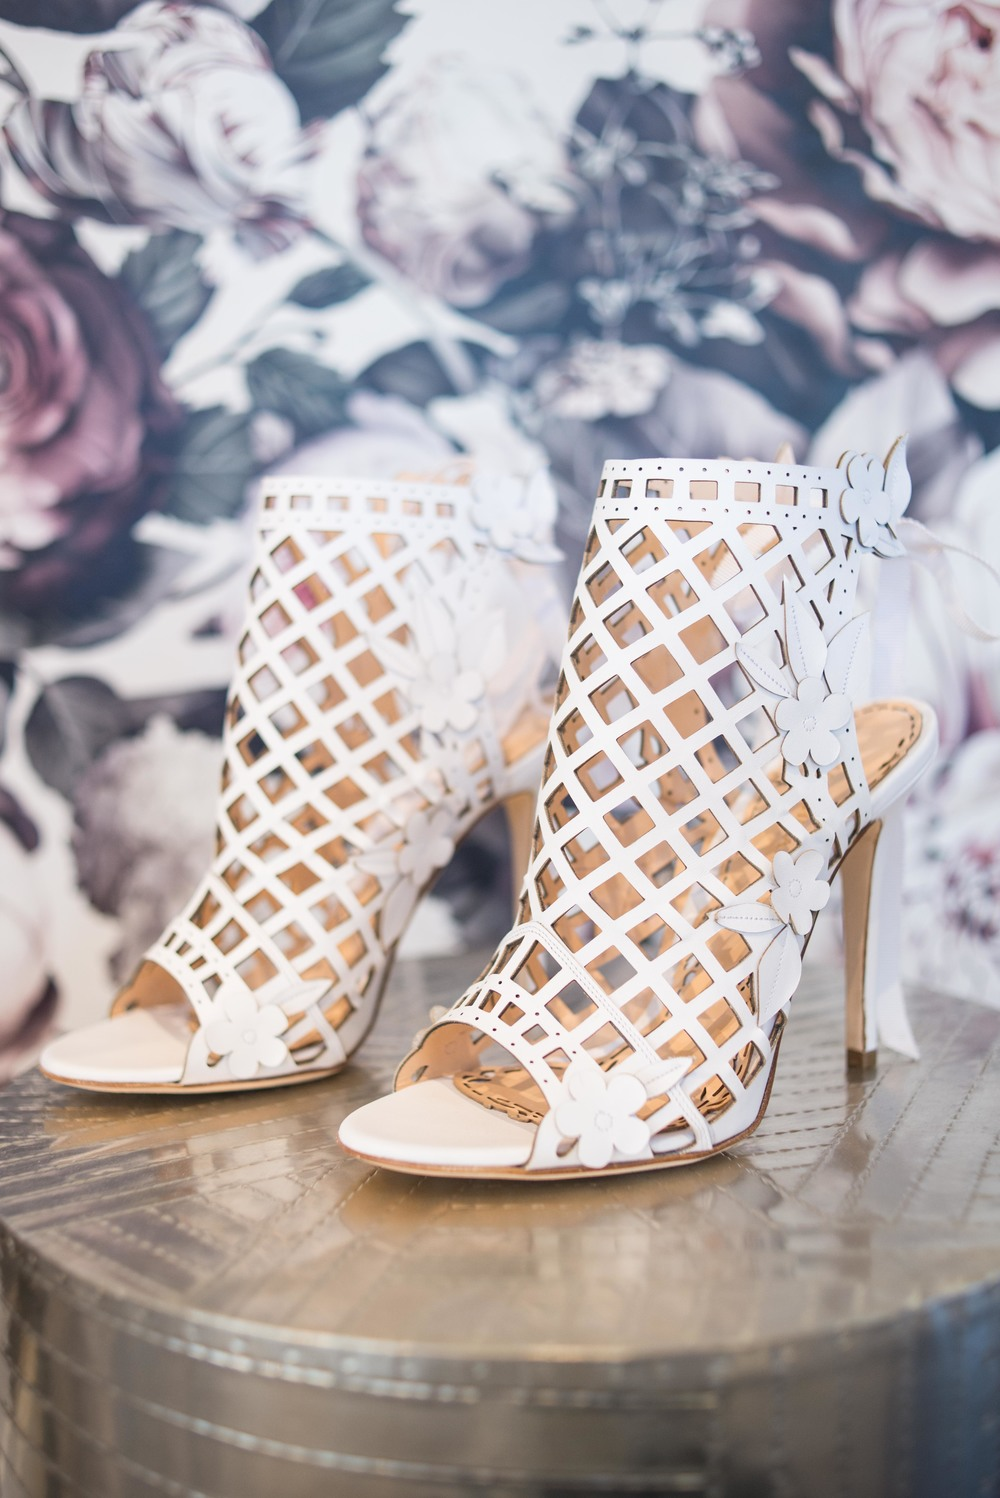 Marchesa shoes - Edith | available in Colorado only at Little White Dress Bridal Shop, Denver